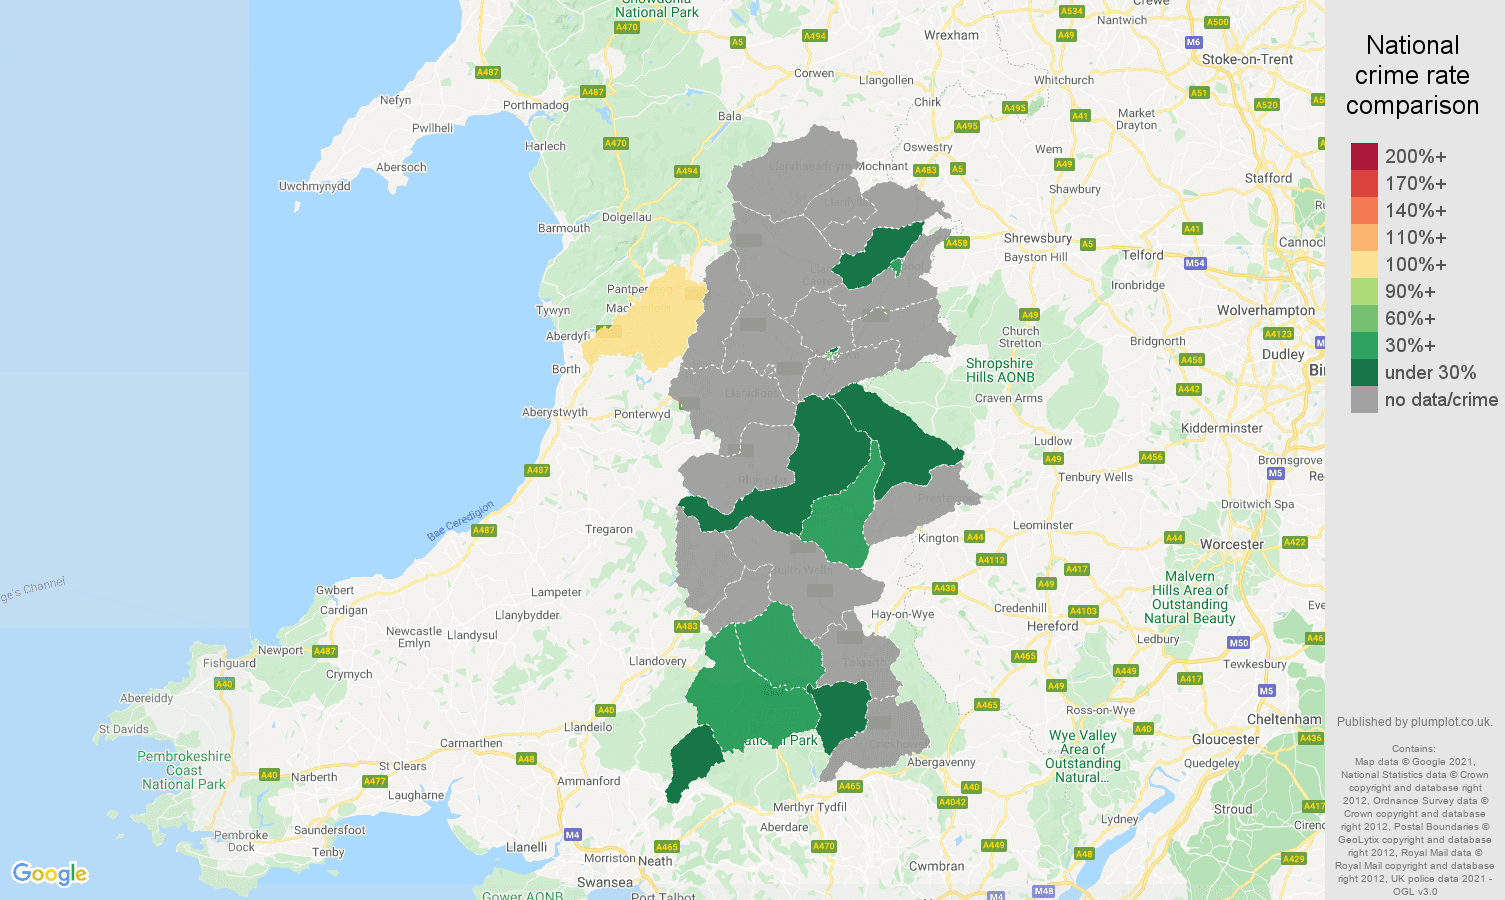 Powys bicycle theft crime rate comparison map